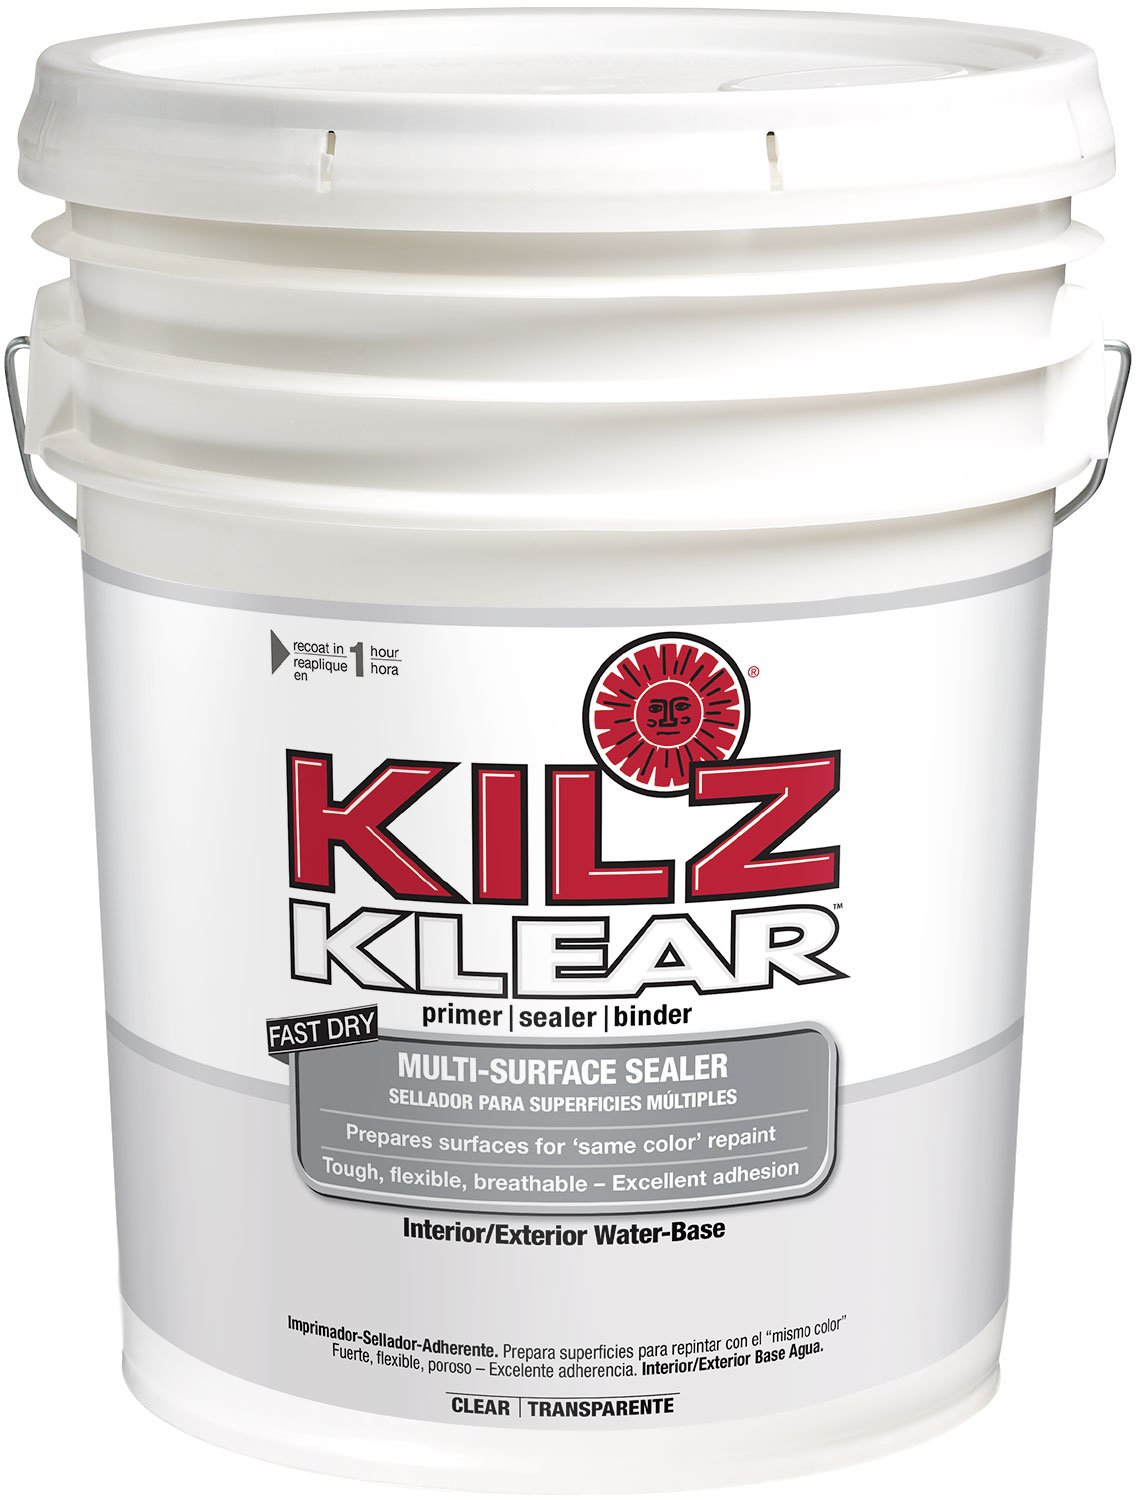 KILZ Klear Multi-Surface Stain Blocking Interior/Exterior Latex Primer/Sealer, Clear, 5 gallon